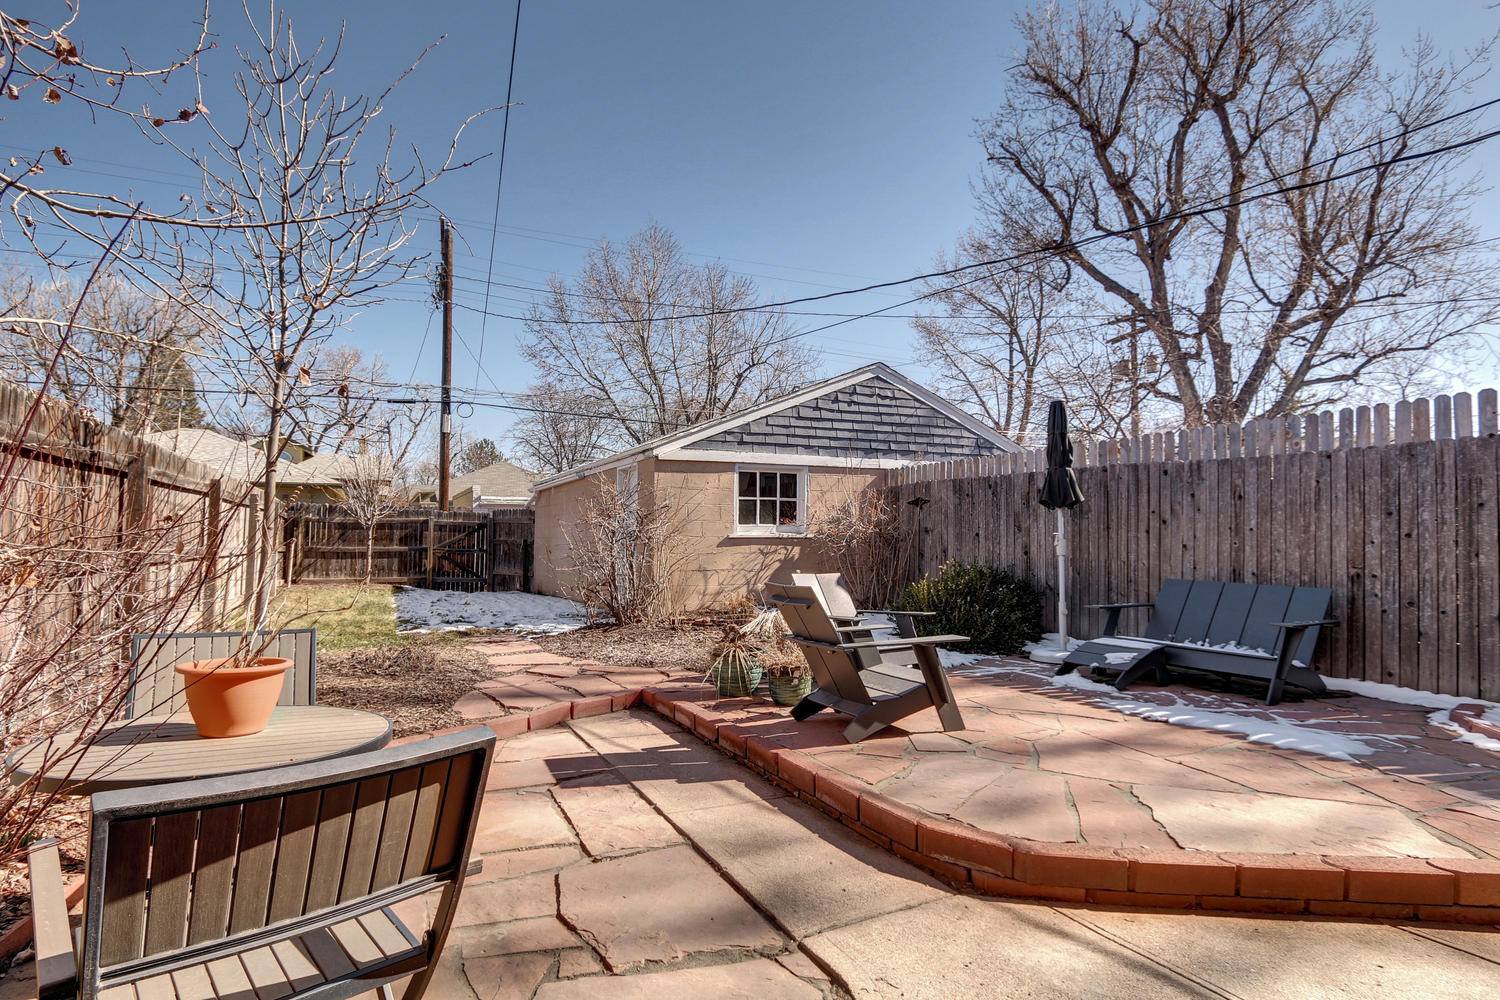 31-528-marion-st-denver-co-80218-large-031-30-hotshotpros-831e-1500x1000-72dpi